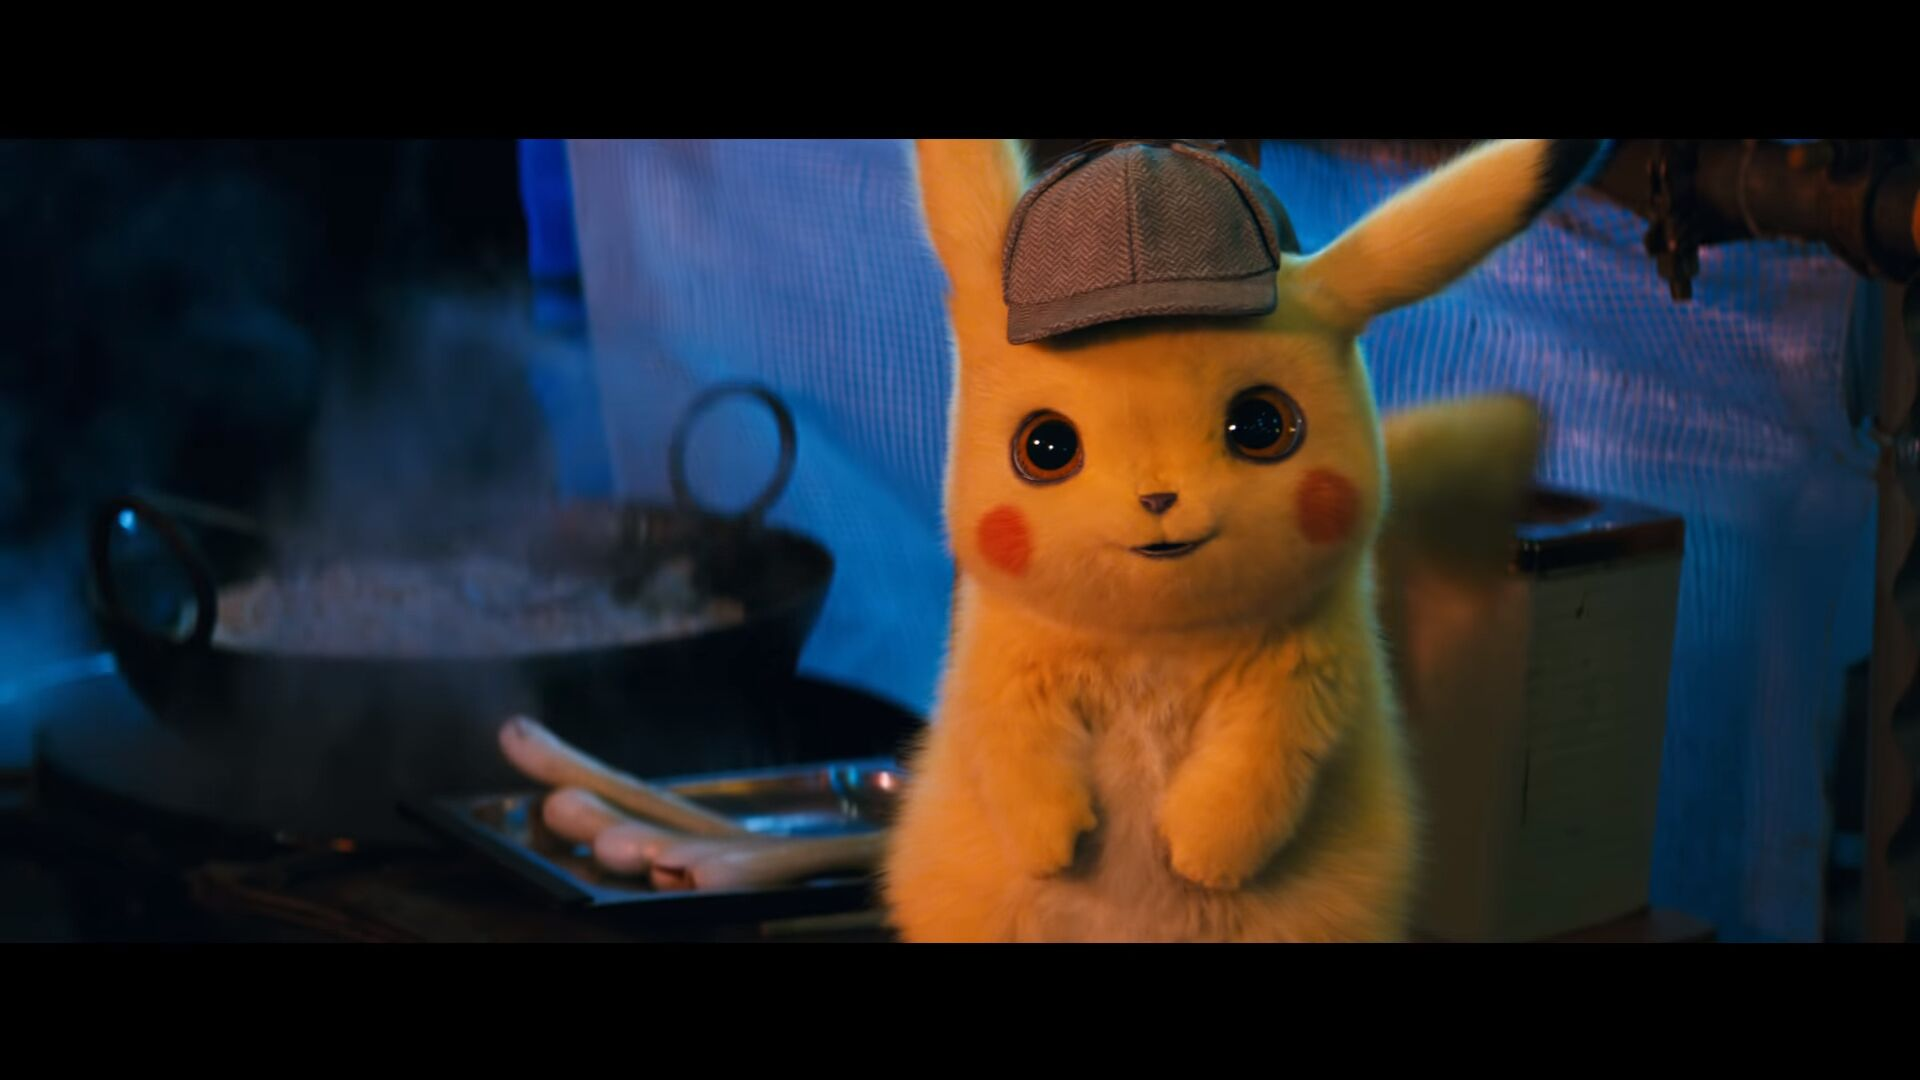 Detective Pikachu trailer hints at the wonderful world of pocket monsters